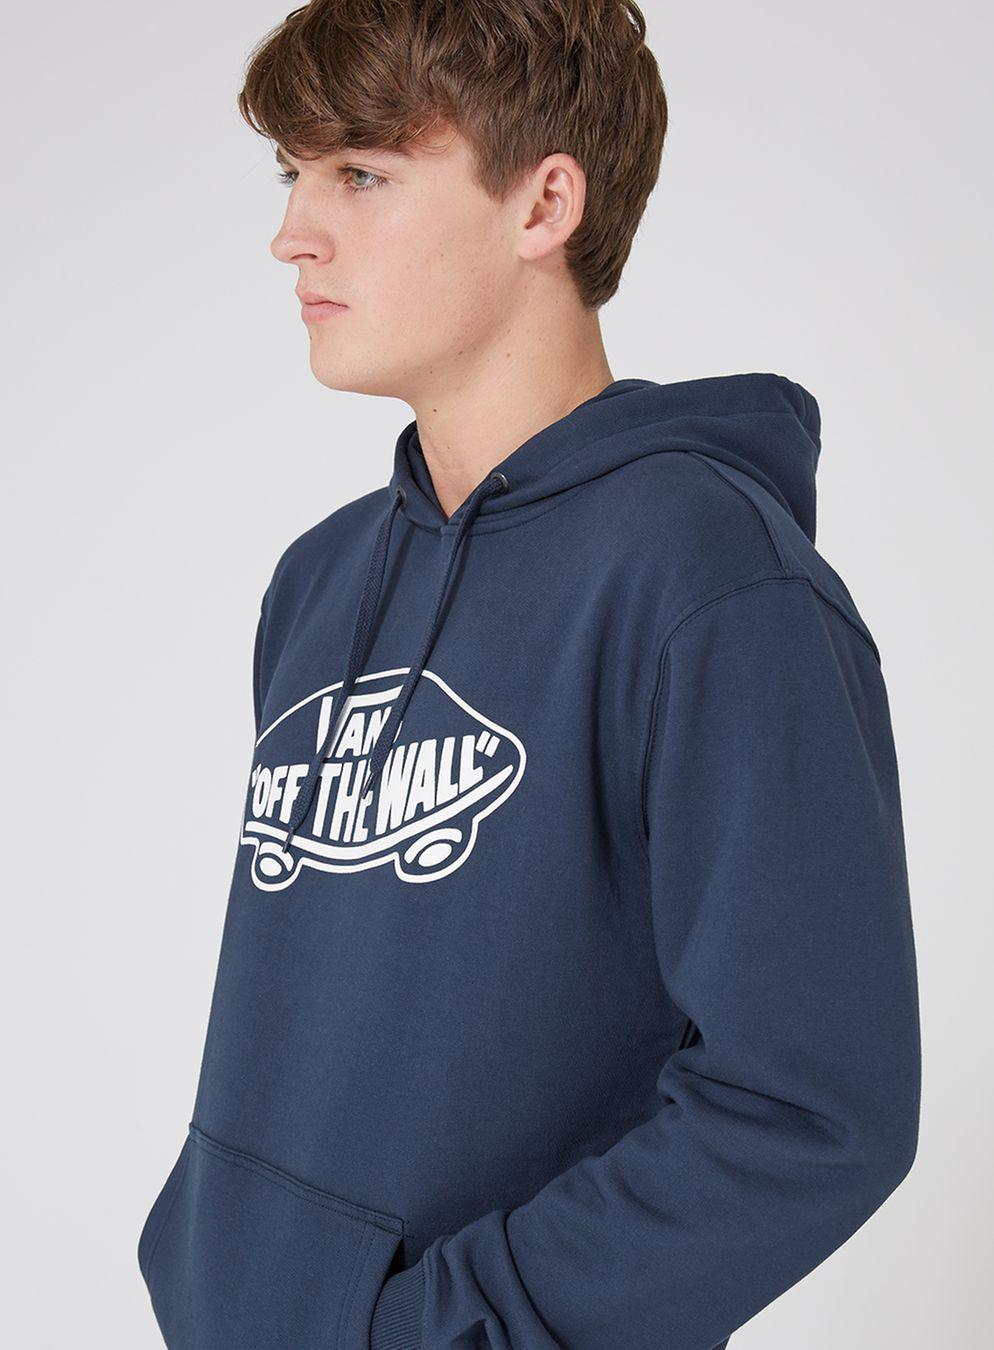 5d98280856ca92 TOPMAN Vans Navy  off The Wall  Fleece Hoodie in Blue for Men - Lyst